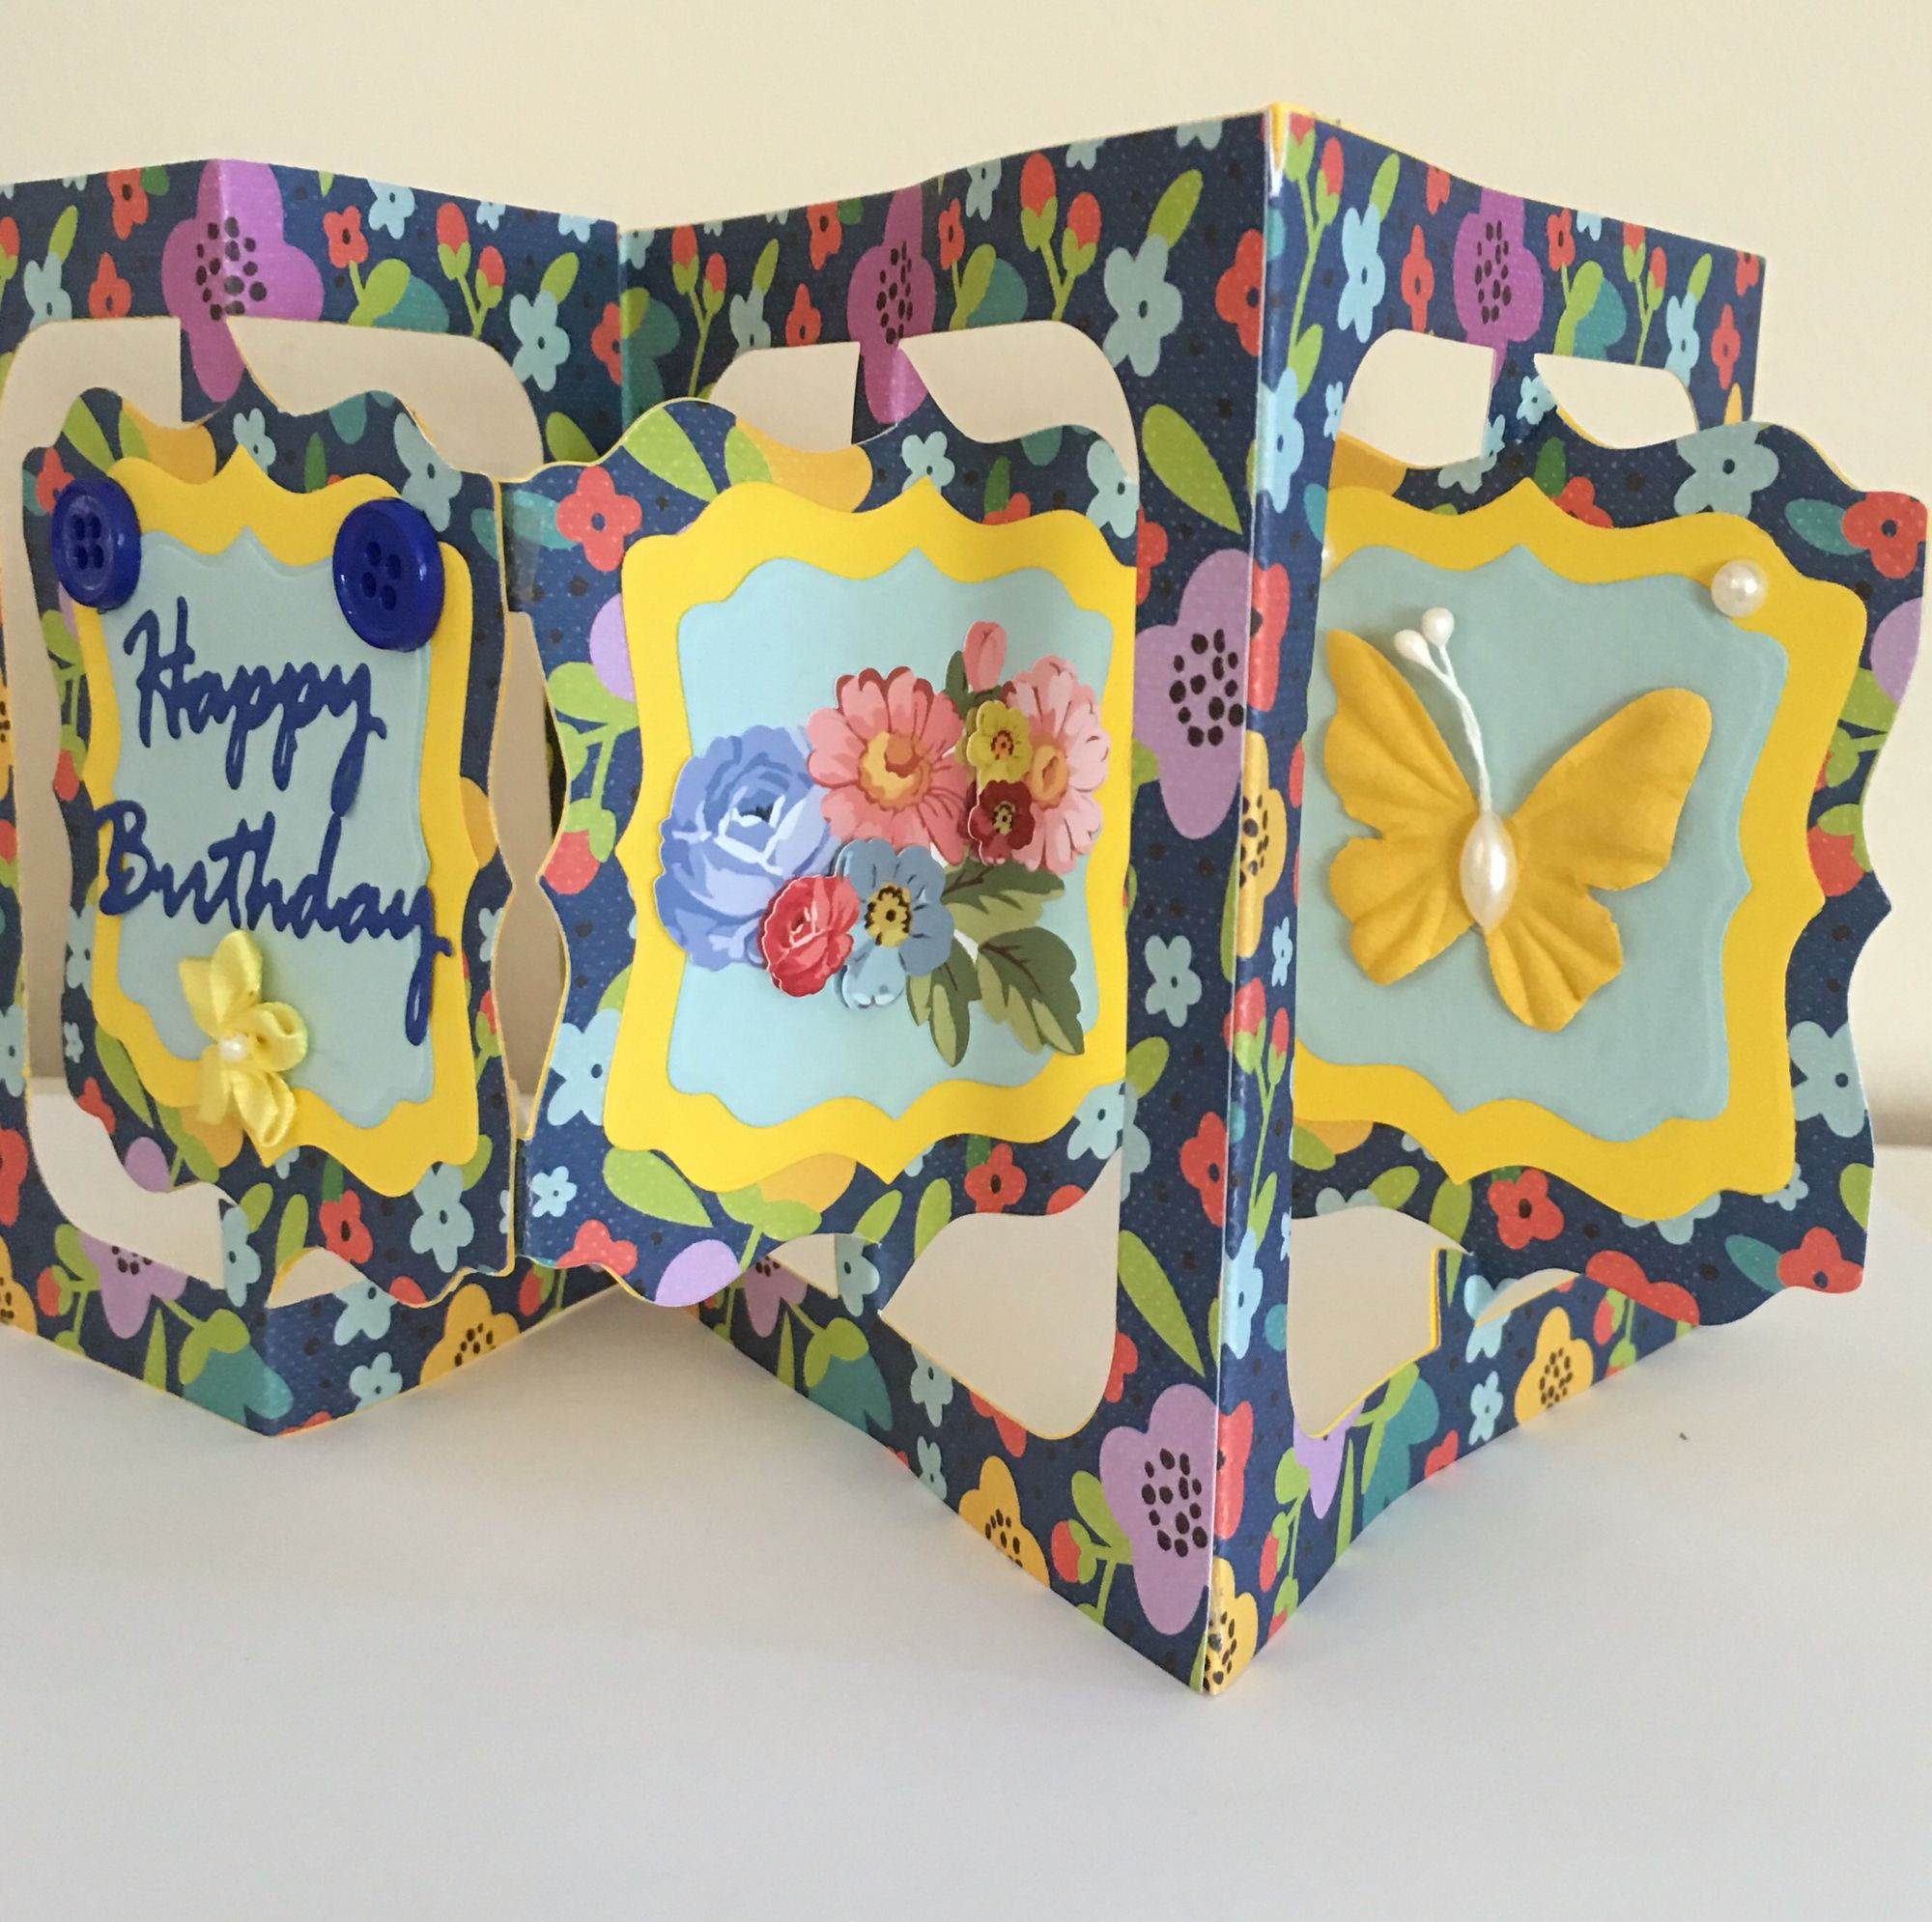 Cby Inside Of Accordion Fold Stand Up Happy Birthday Greeting